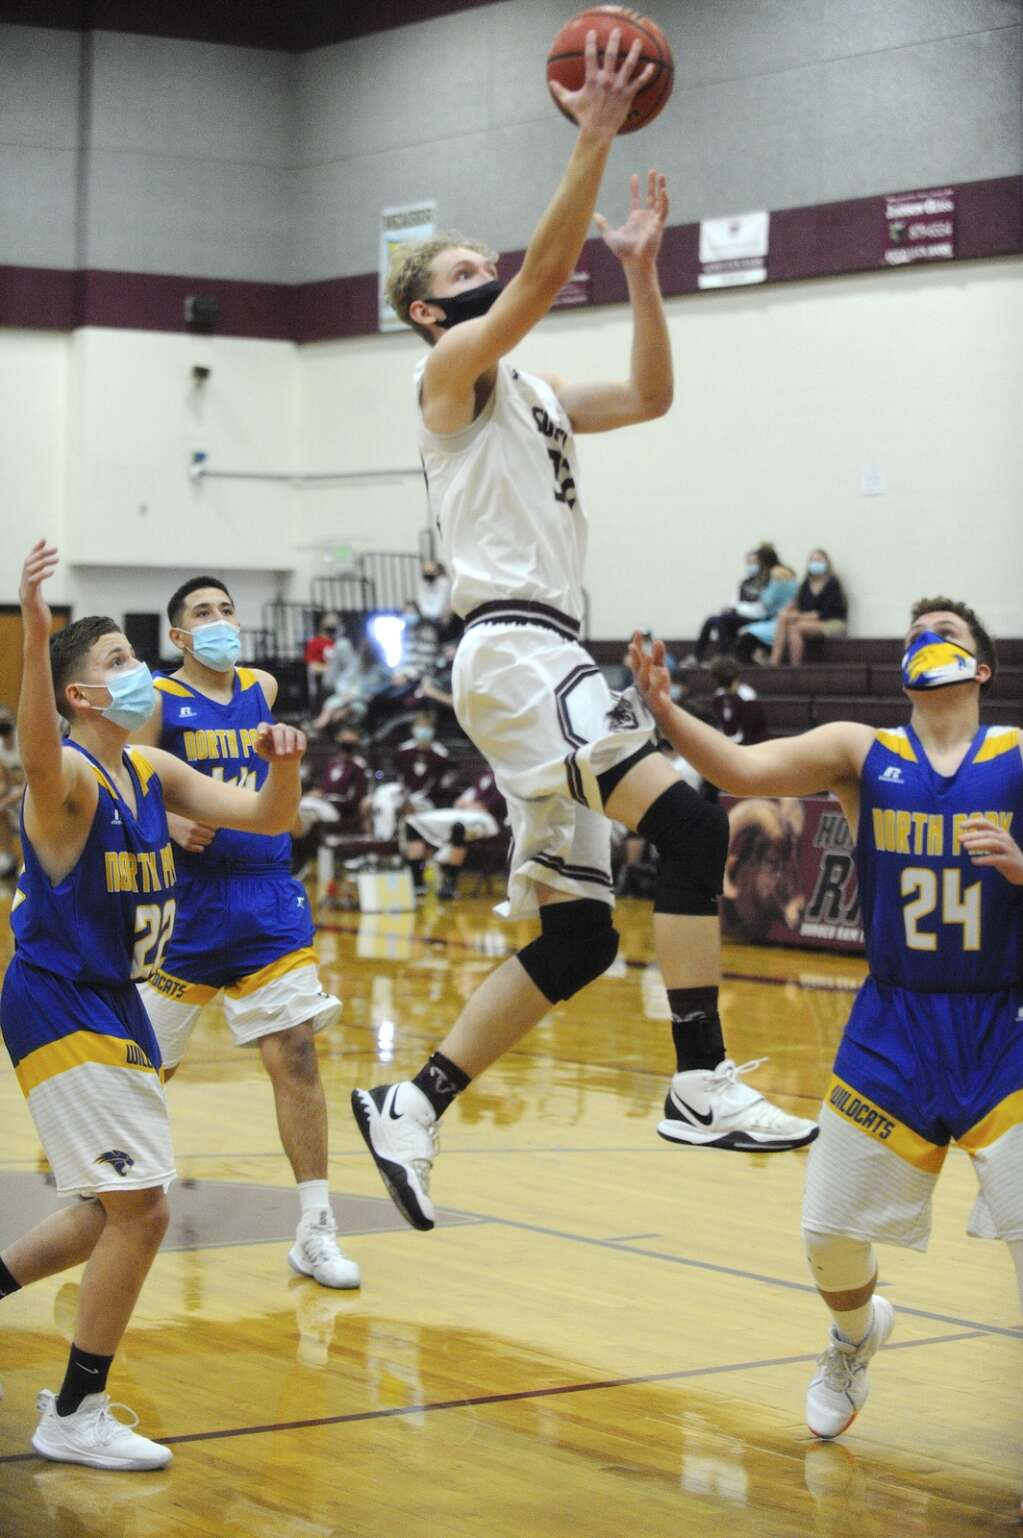 Soroco senior Liam Yaconiello scores a layup during a game in Oak Creek on Saturday afternoon. (Photo by Shelby Reardon)